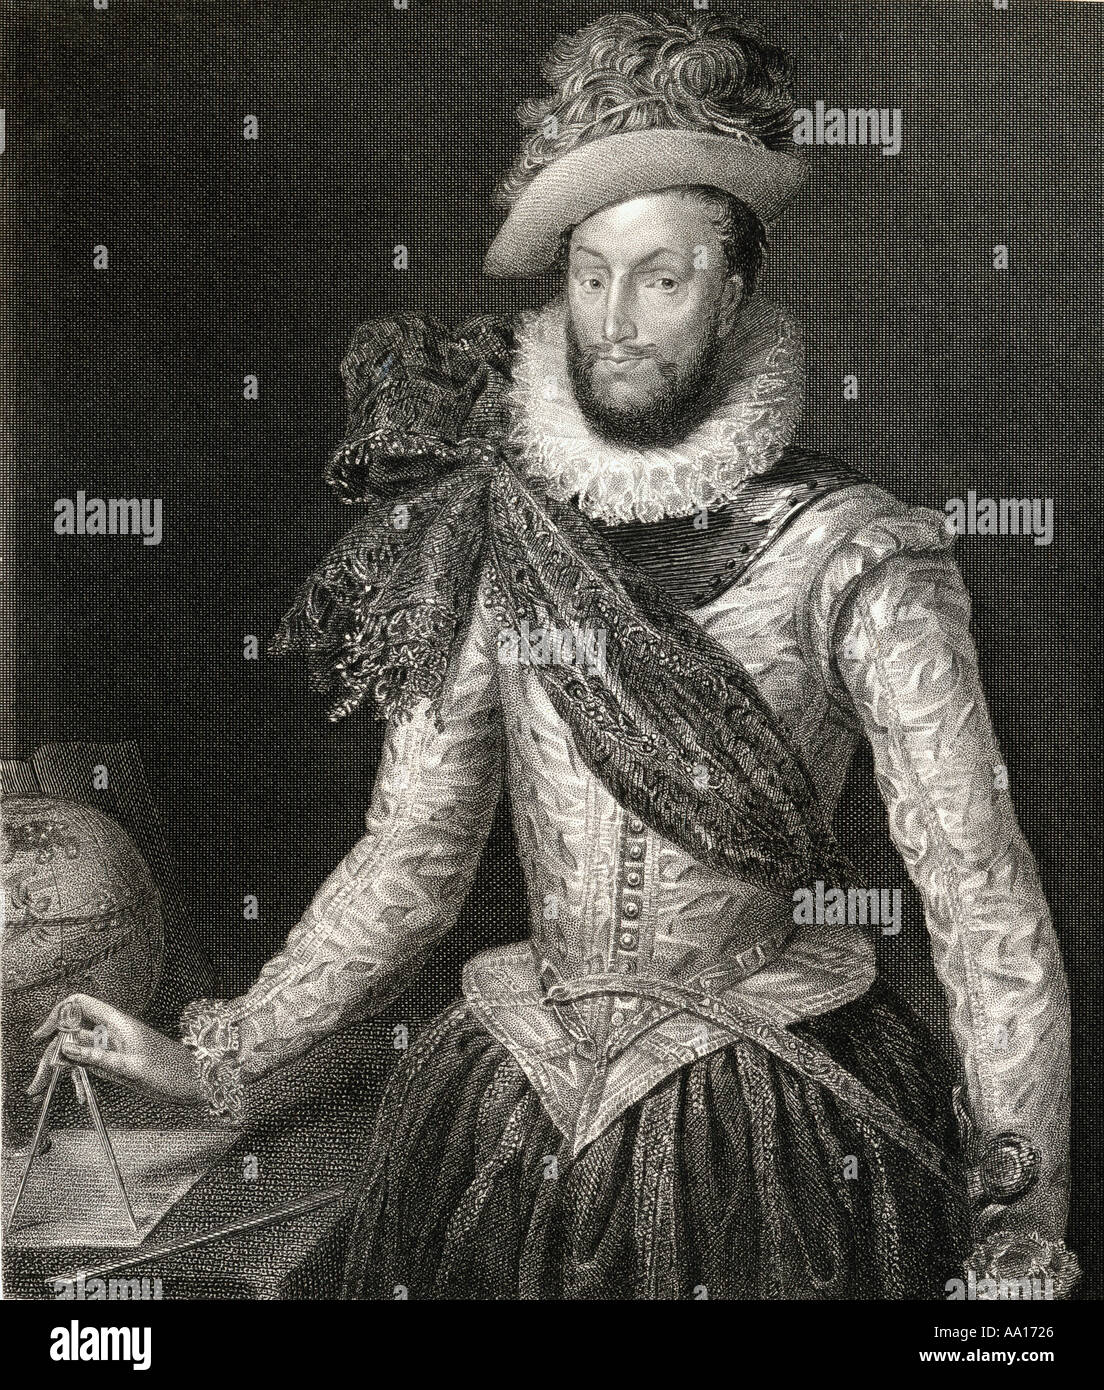 Sir Walter Raleigh, c 1554 - 1618. English landed gentleman, writer, poet, soldier, politician, courtier, spy and explorer. - Stock Image